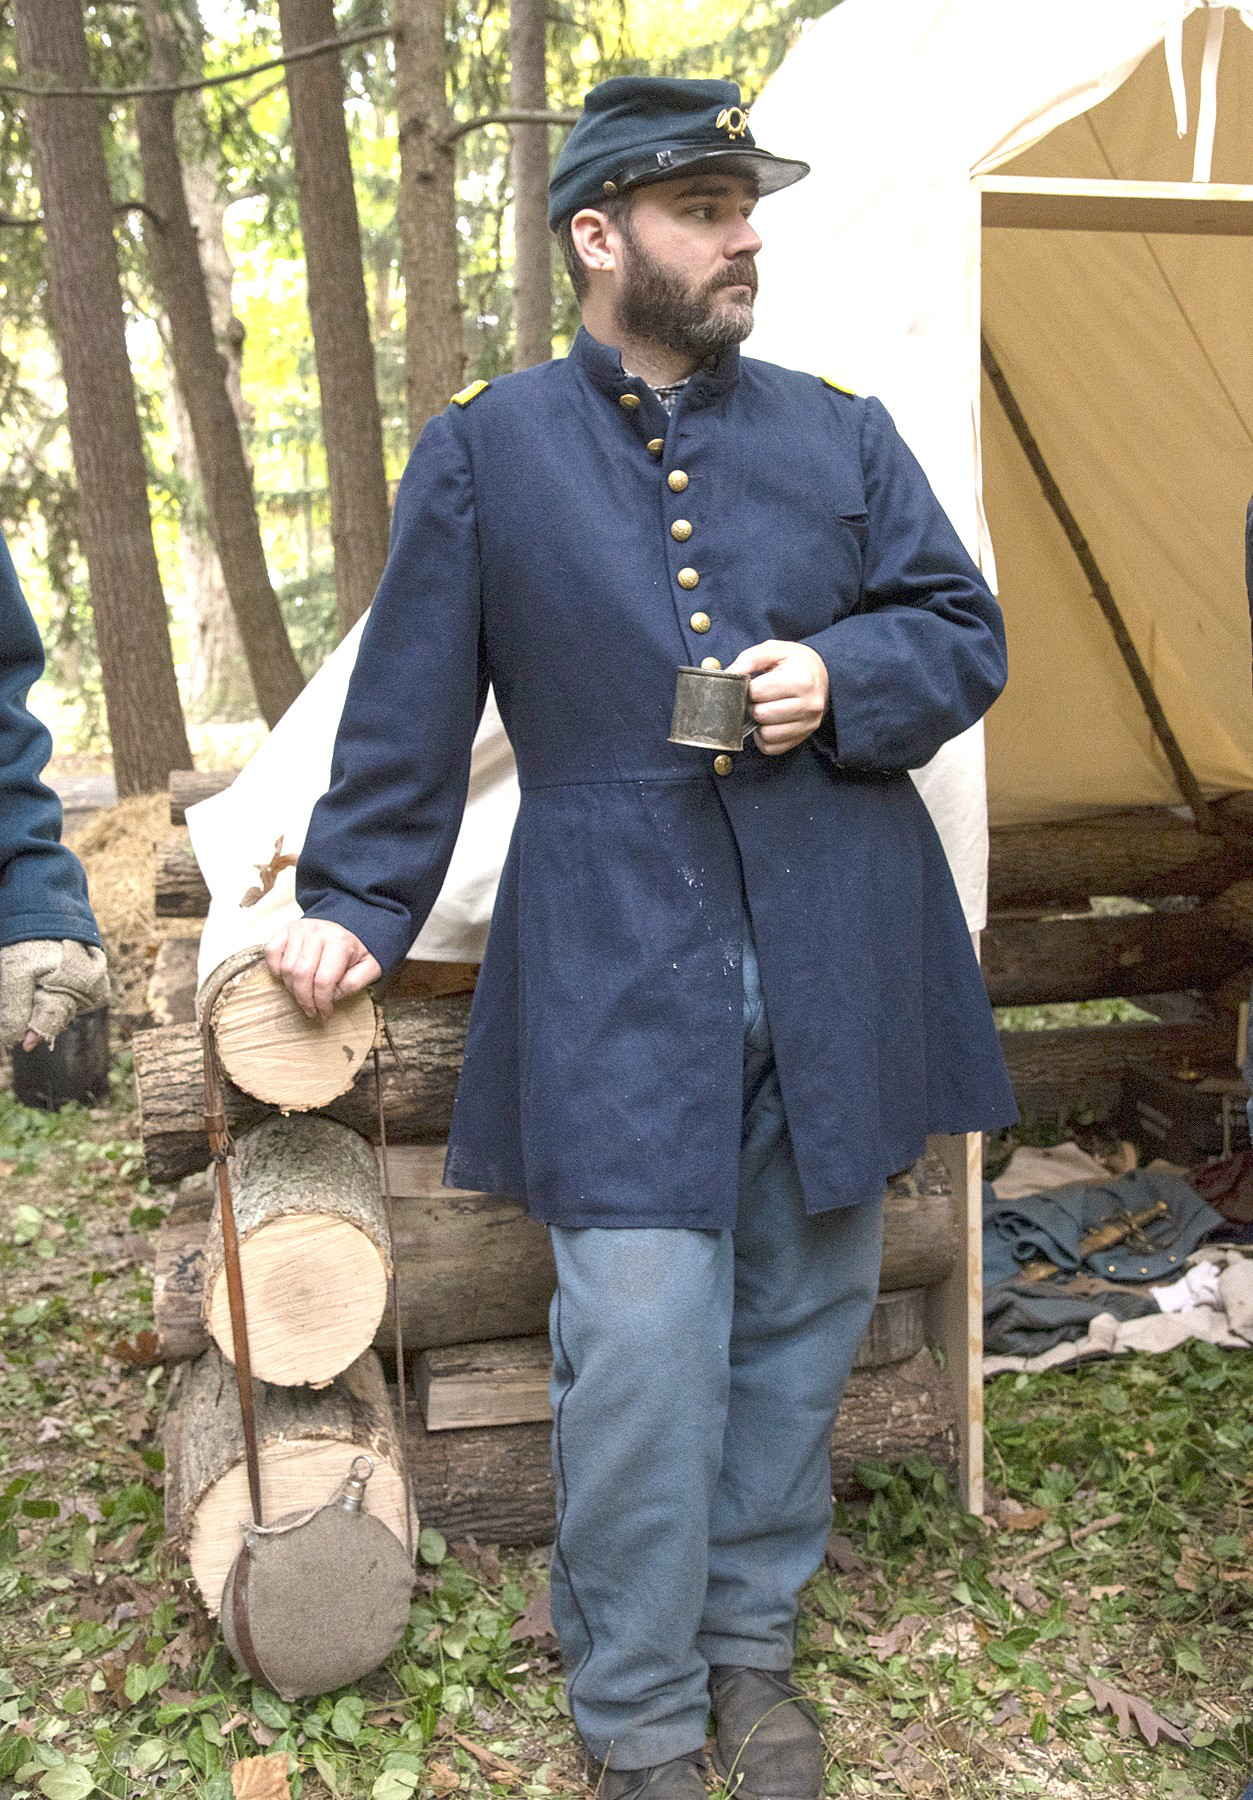 Visitors can experience what life was like for President Rutherford B. Hayes' Civil War regiment at events taking place Oct. 24 at the Hayes Presidential Library & Museums in Fremont. (Submitted photo)